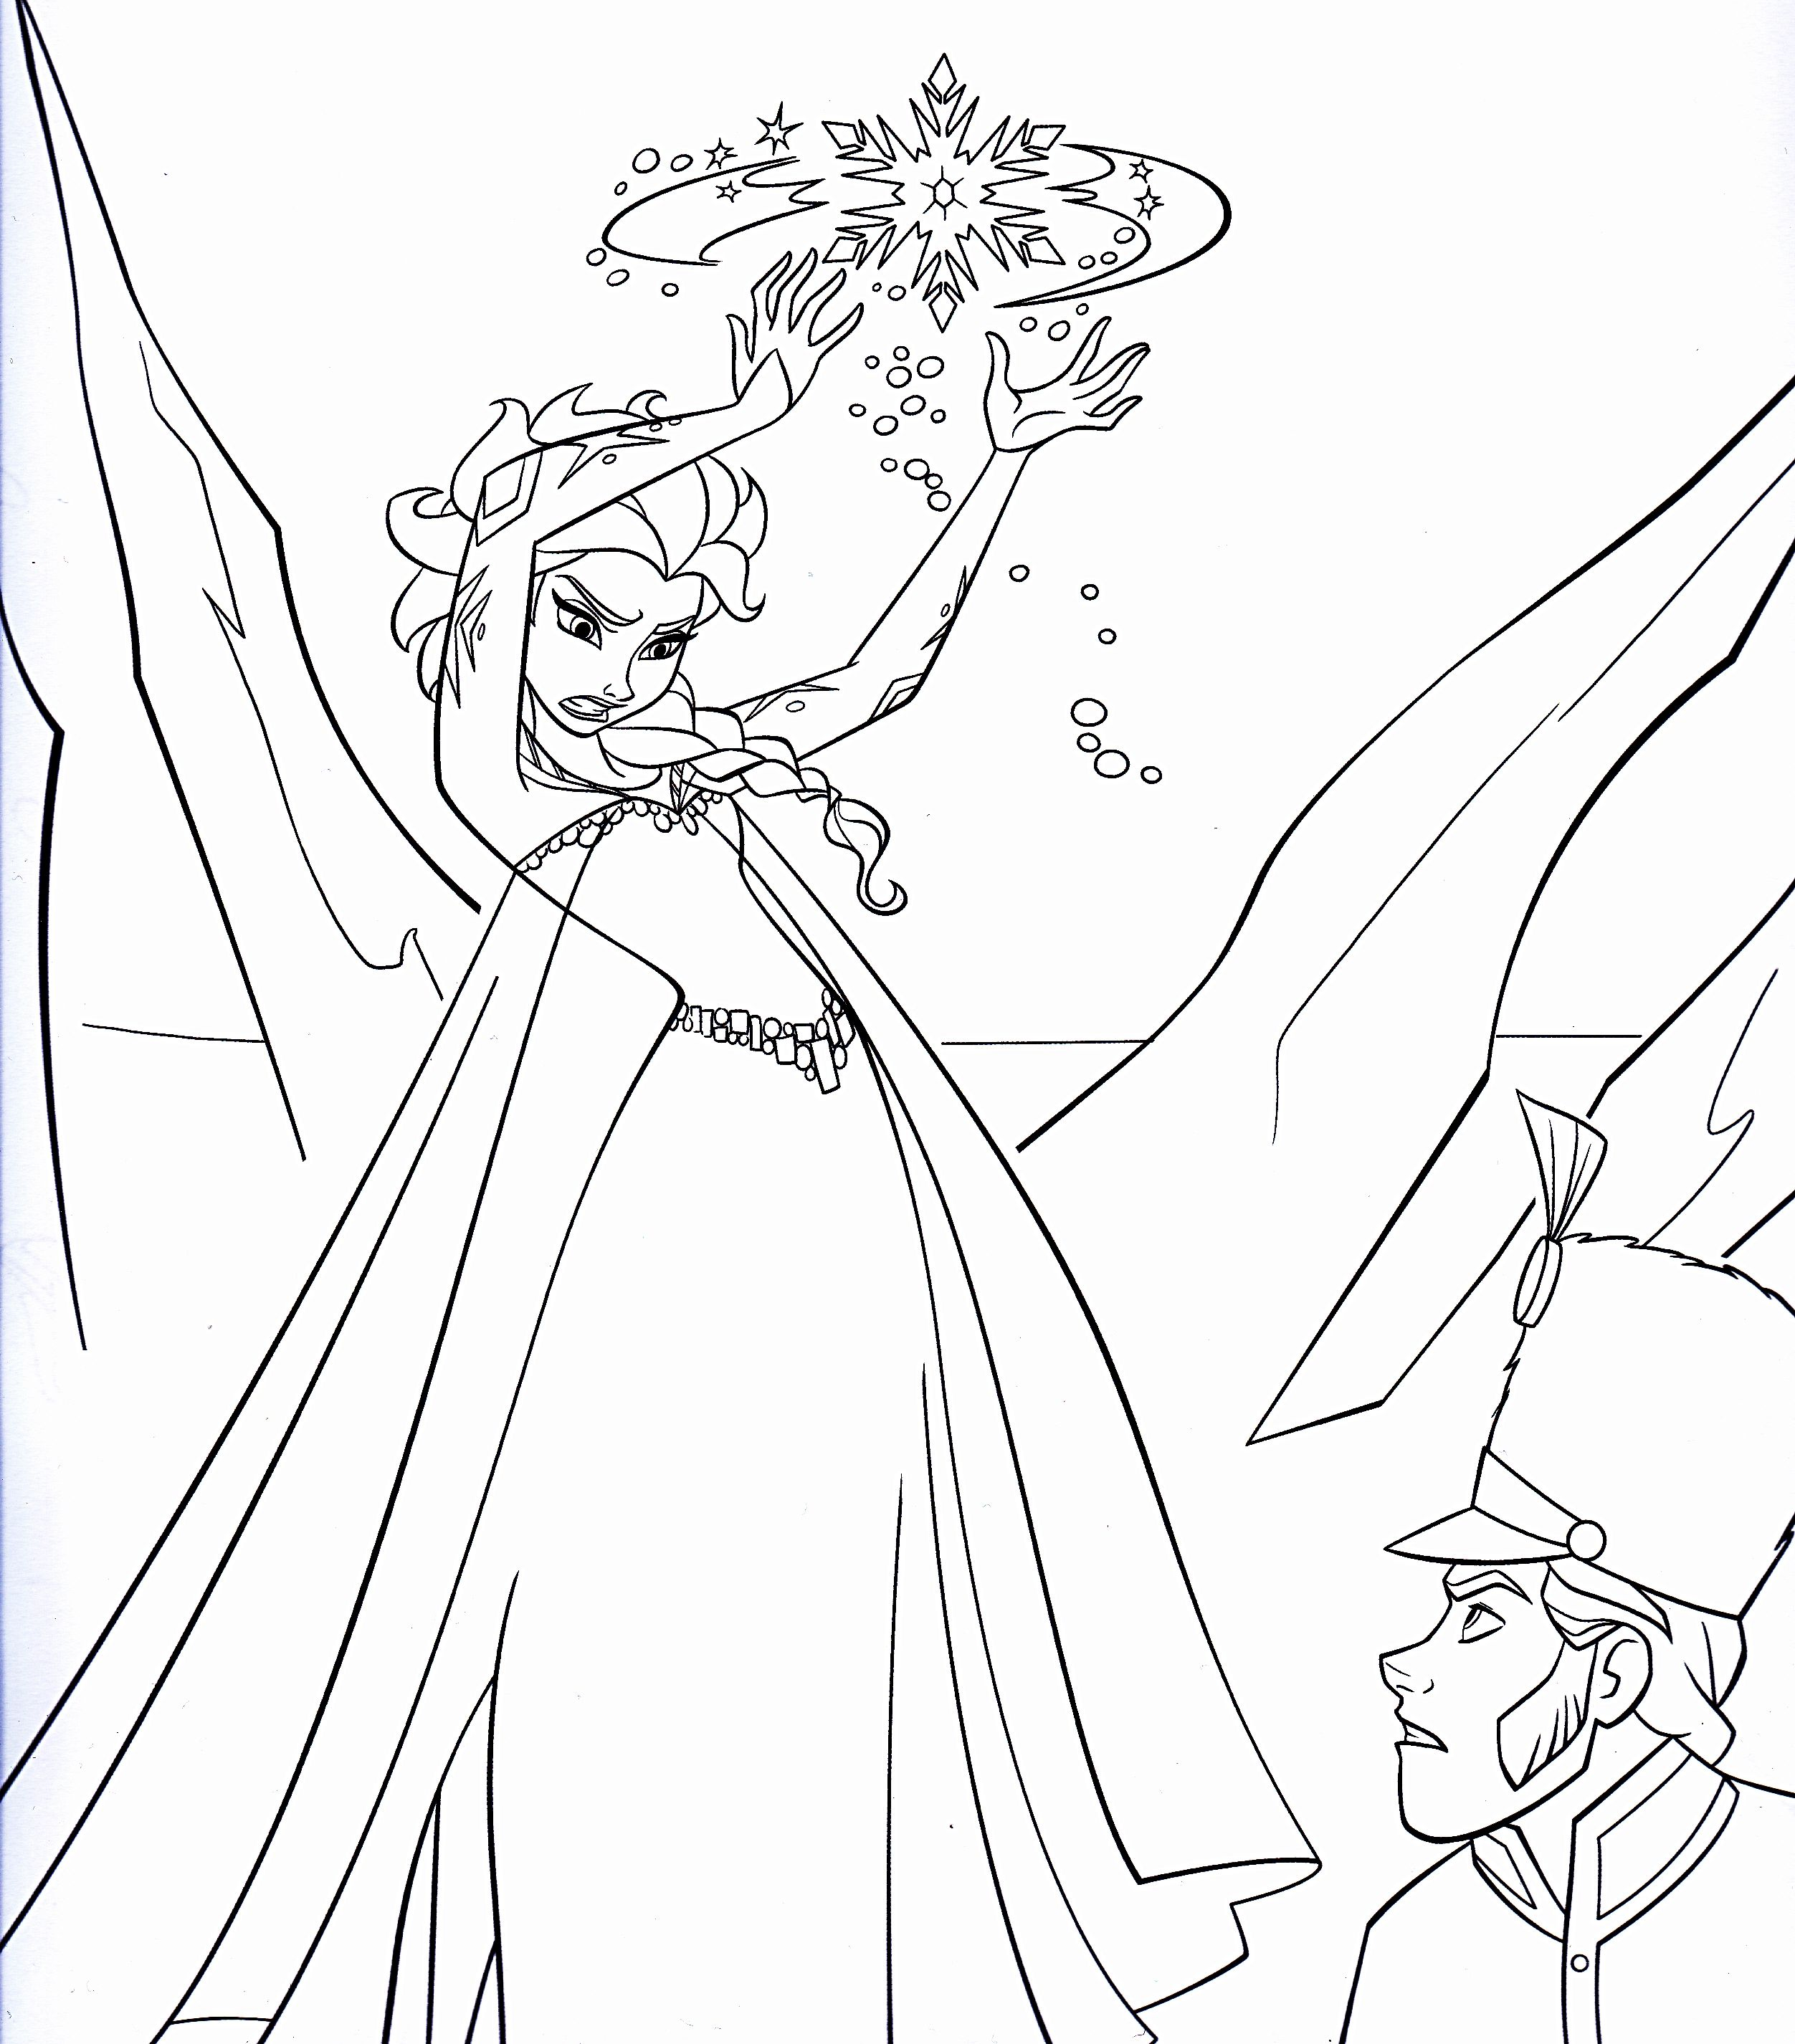 Coloring pages frozen - Disney Frozen Coloring Sheets Walt Disney Coloring Pages Queen Elsa Prince Hans